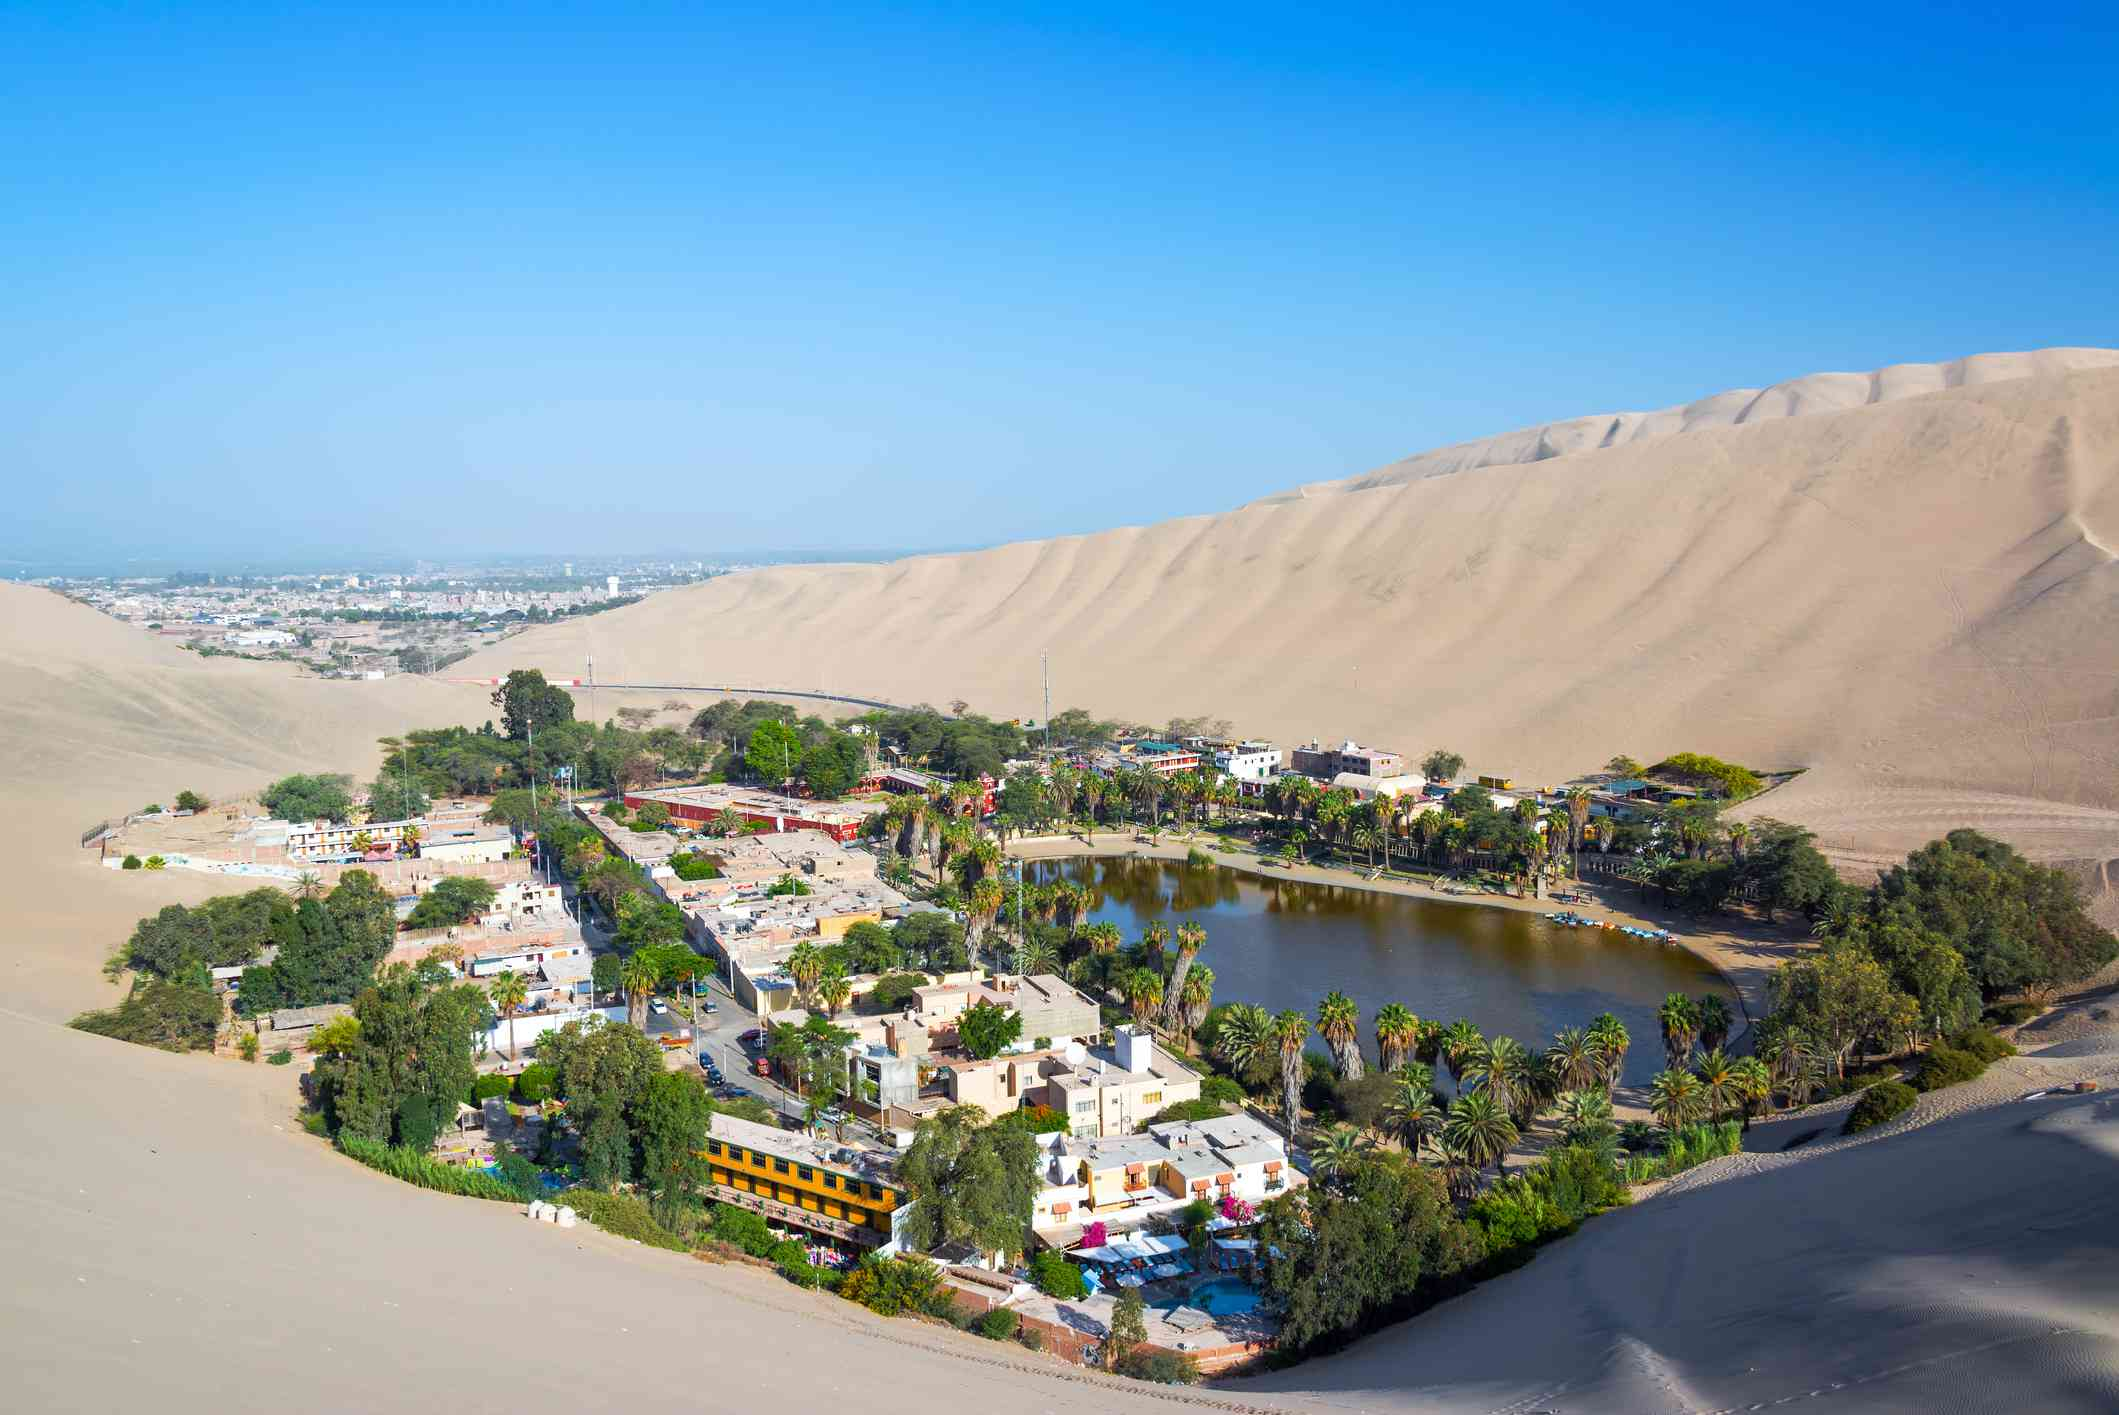 Huacachina oasis, ringed with green trees and surrounded by sand, with Ica, Peru in the Background